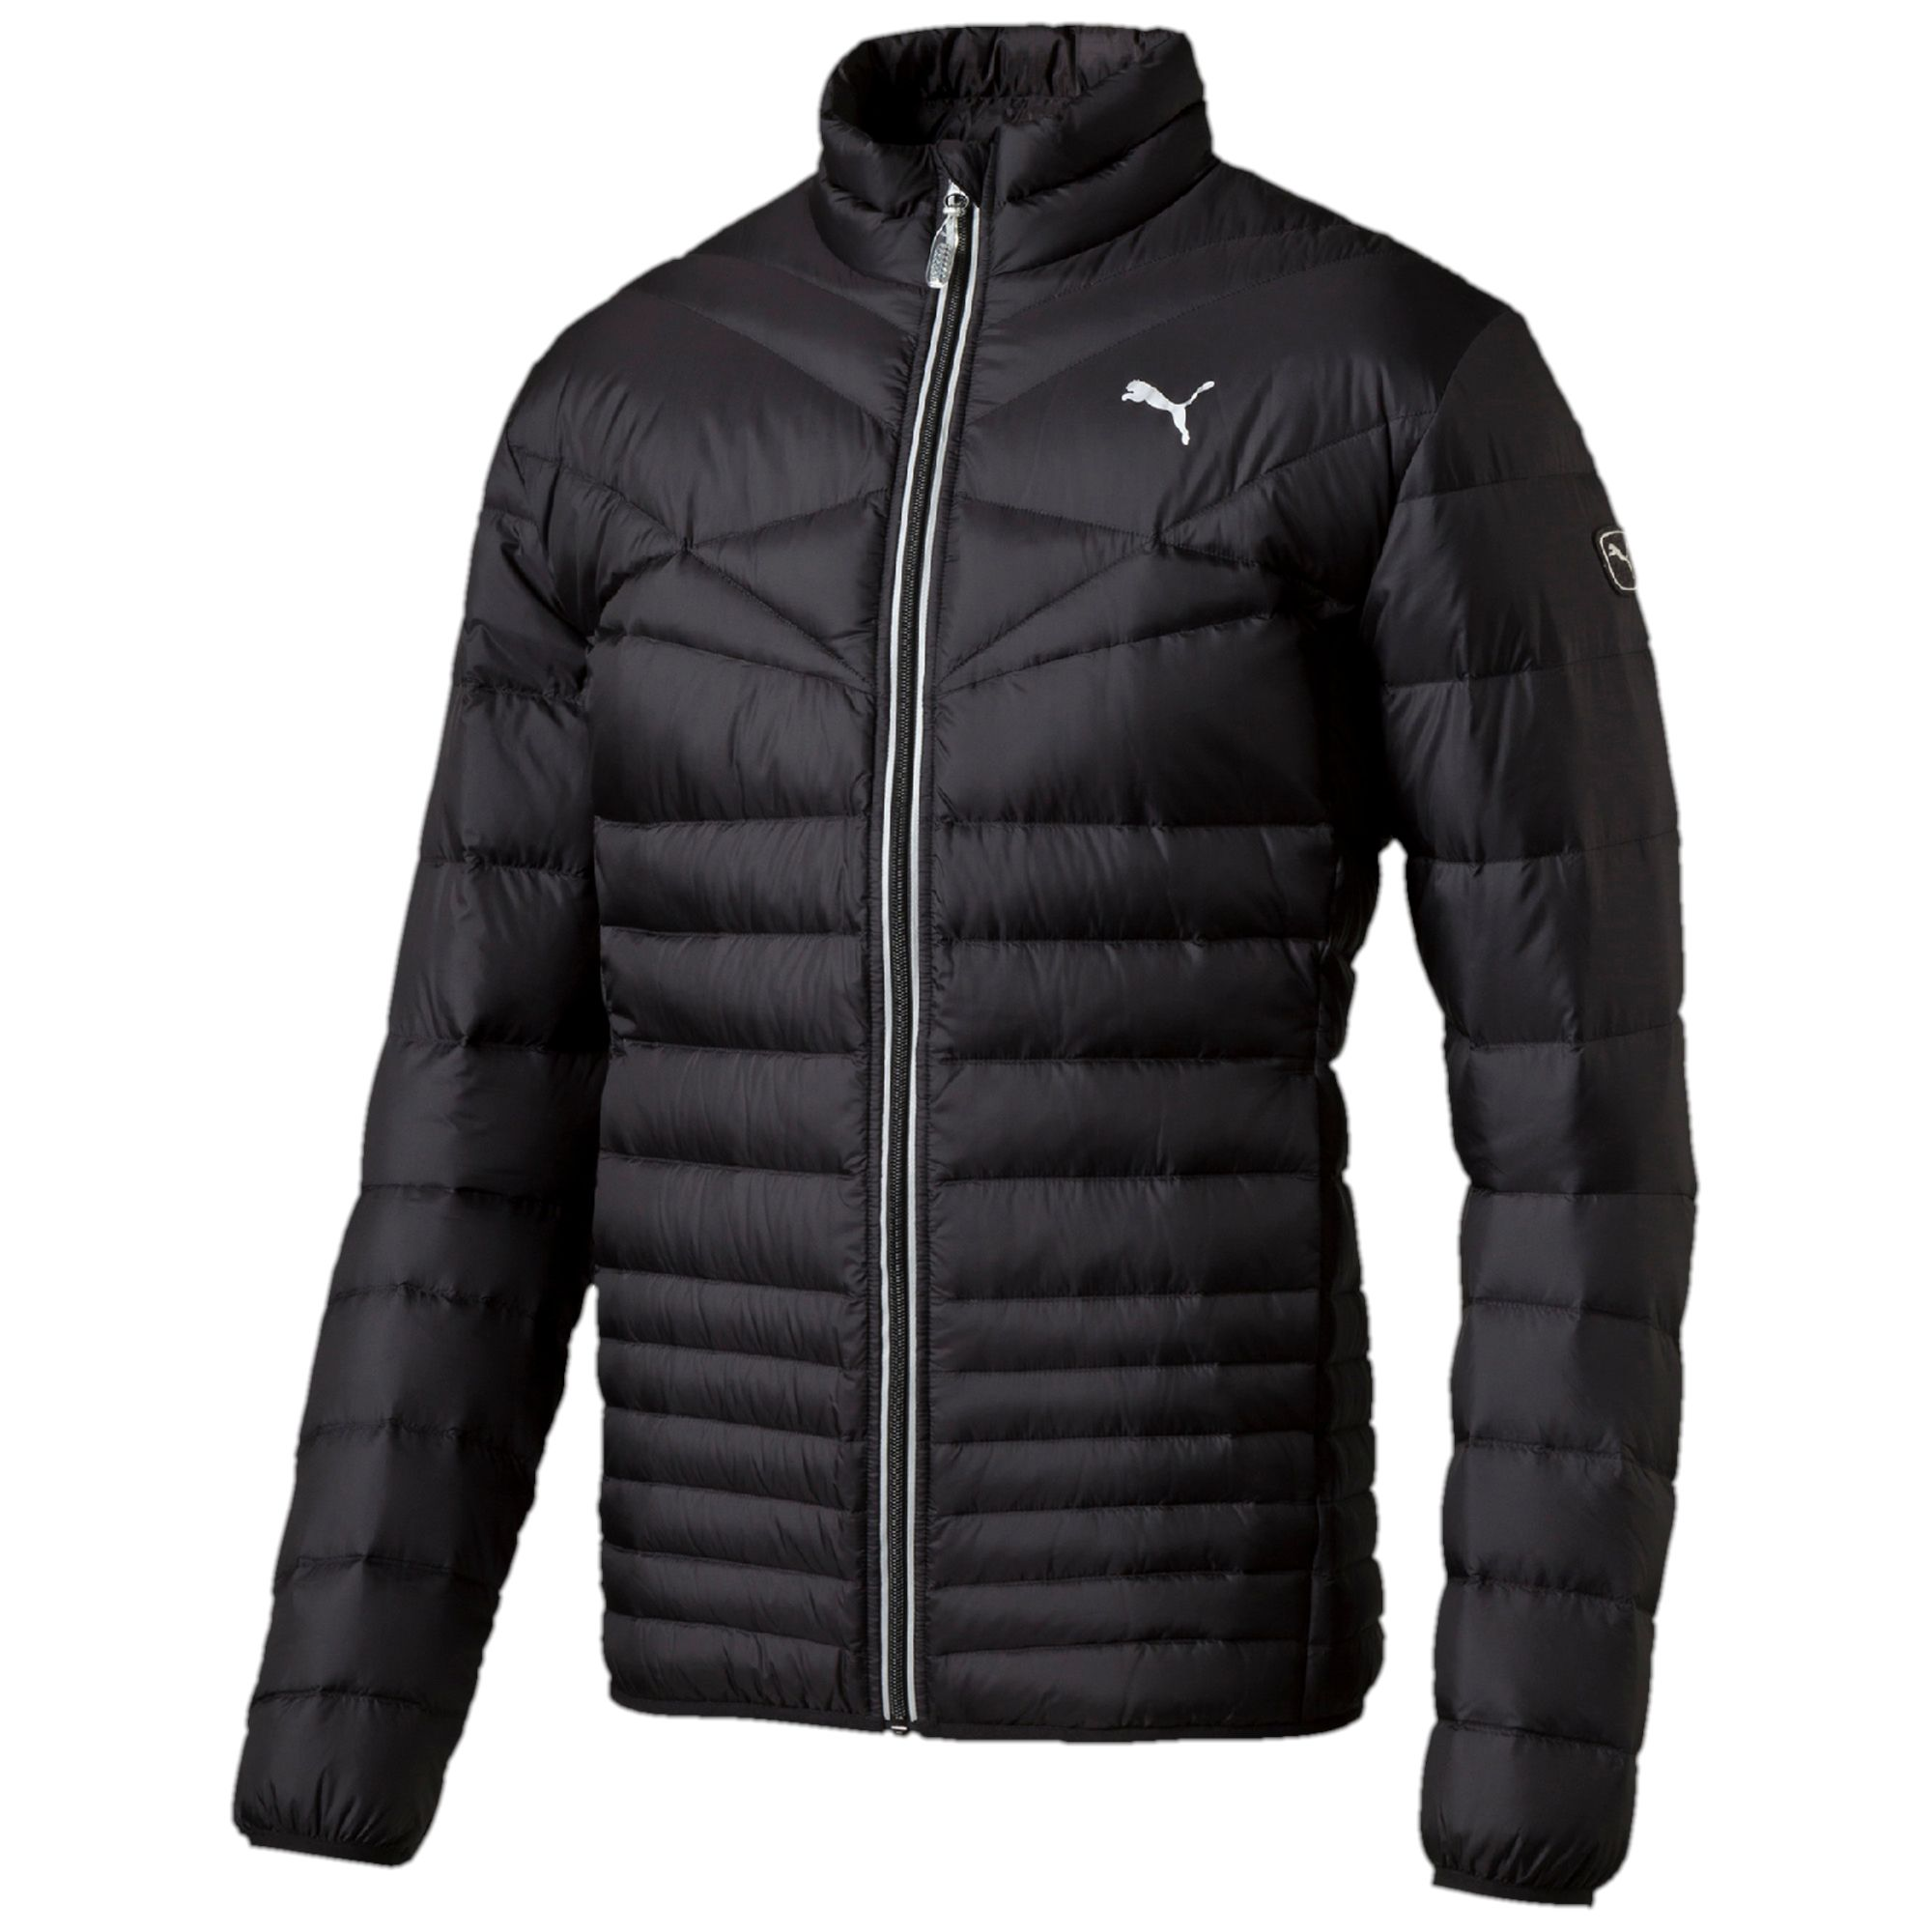 puma active 600 packlight daunenjacke bekleidung jacke. Black Bedroom Furniture Sets. Home Design Ideas